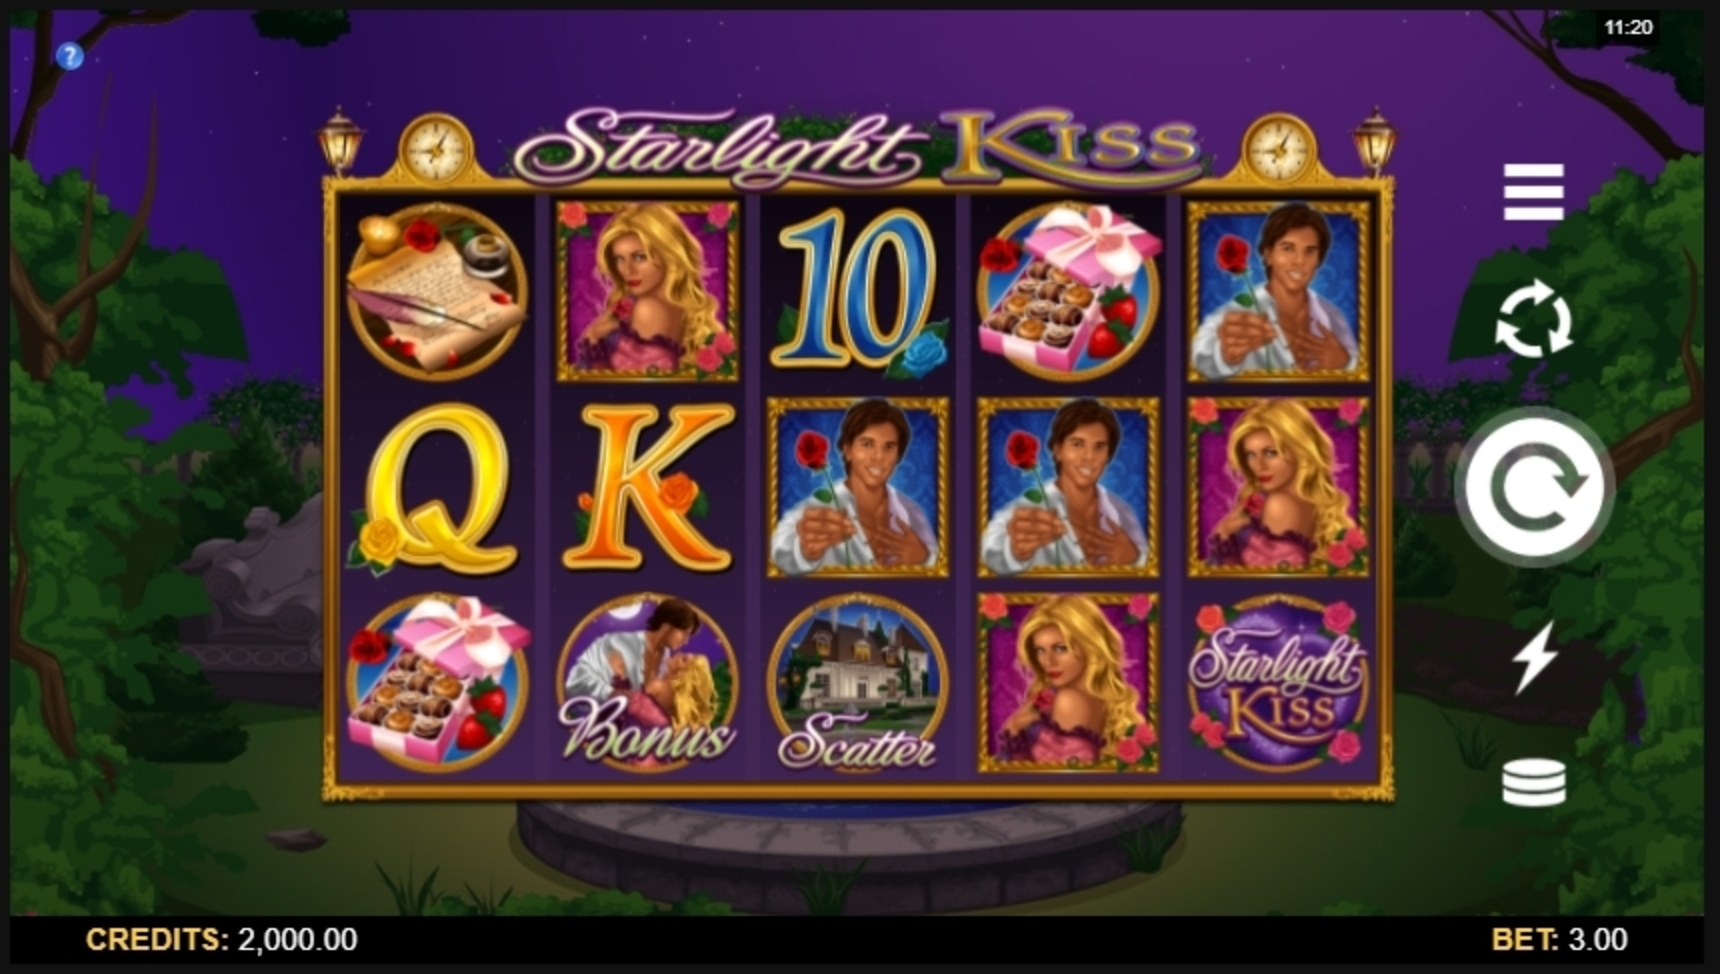 Reels in Starlight Kiss Slot Game by Microgaming